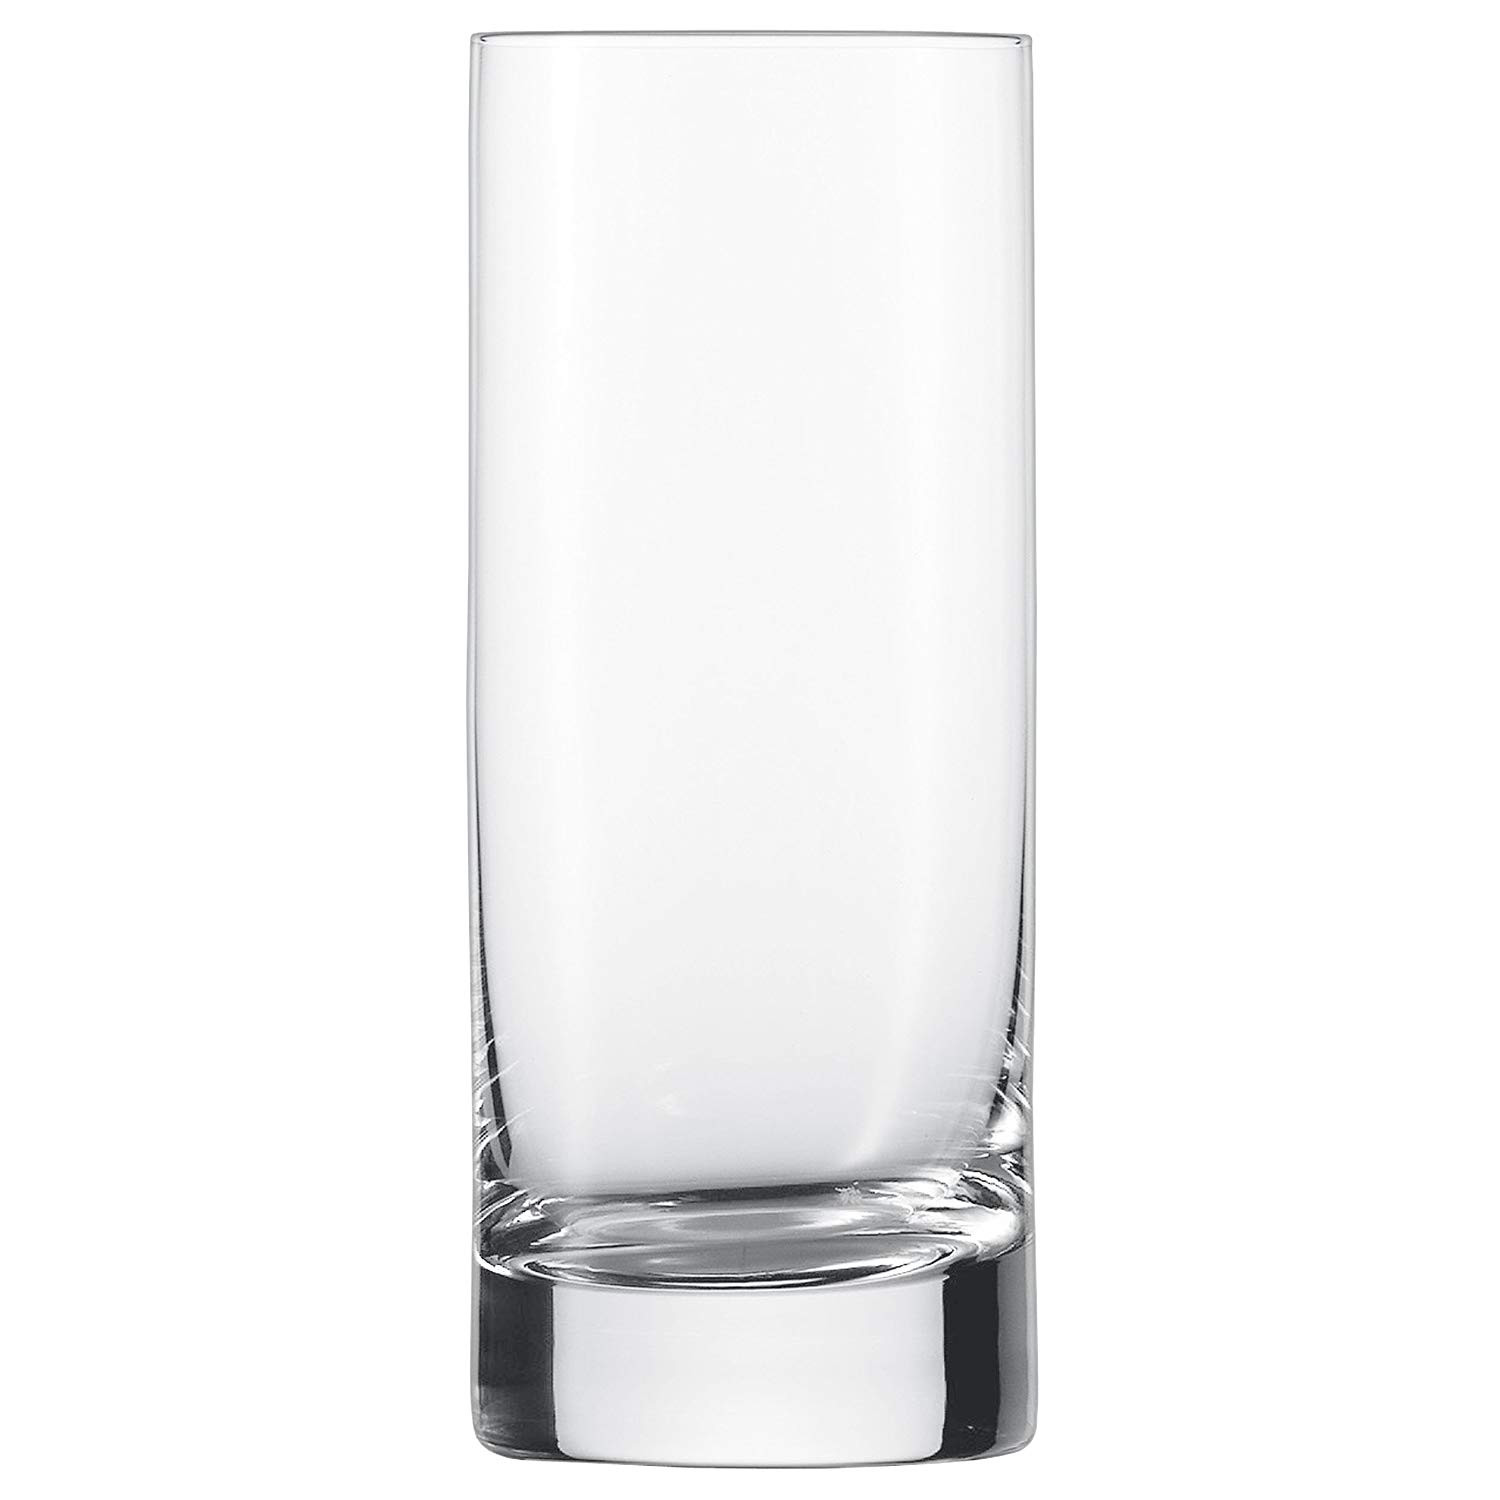 Tall Thin Clear Glass Vases Of Amazon Com Schott Zwiesel Tritan Crystal Glass Paris Barware Inside Amazon Com Schott Zwiesel Tritan Crystal Glass Paris Barware Collection Collins Long Drink Cocktail Glass 11 1 Ounce Set Of 6 Old Fashioned Glasses